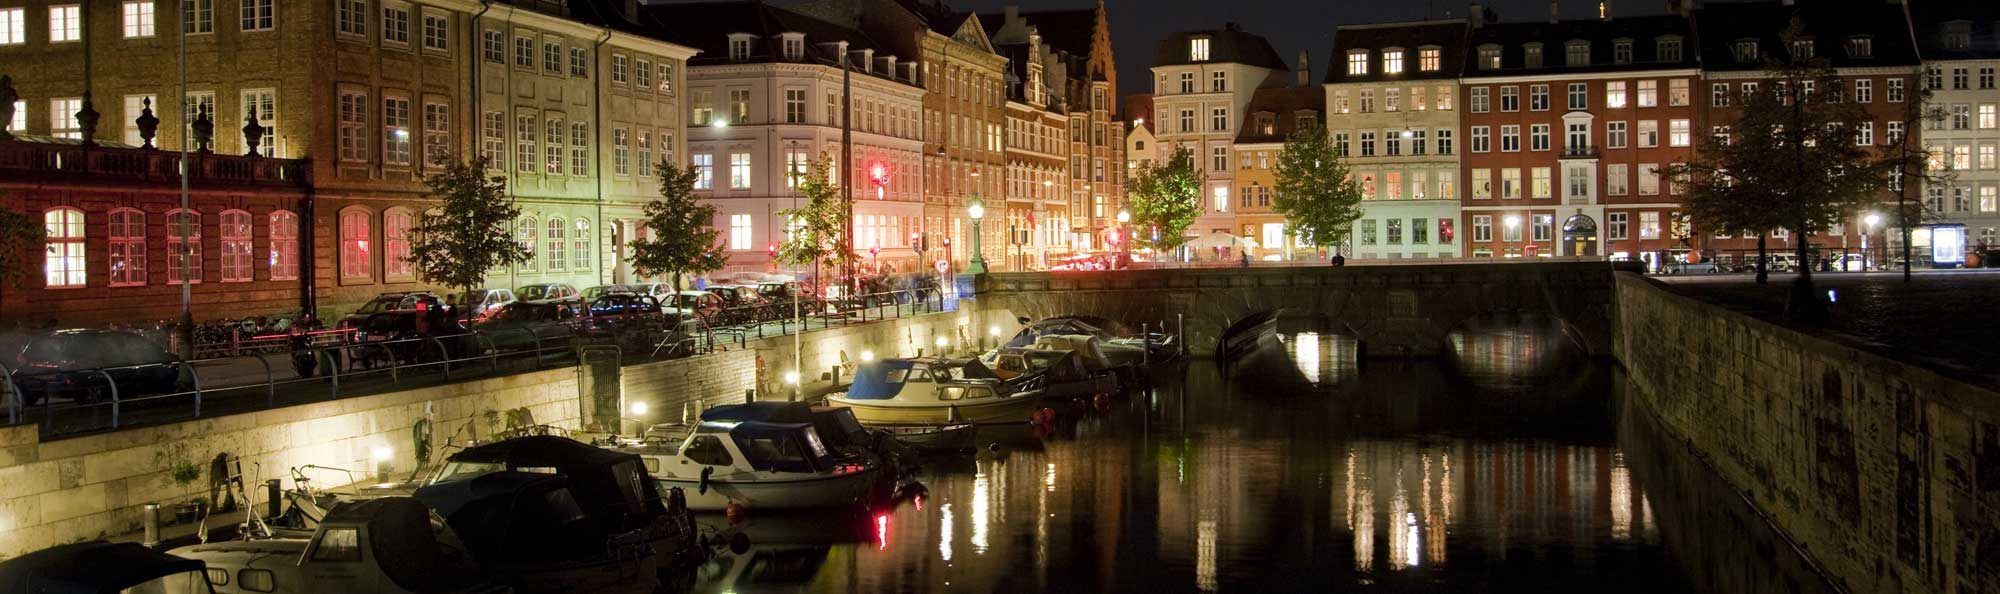 COPENHAGEN AS A TOURIST DESTINATION